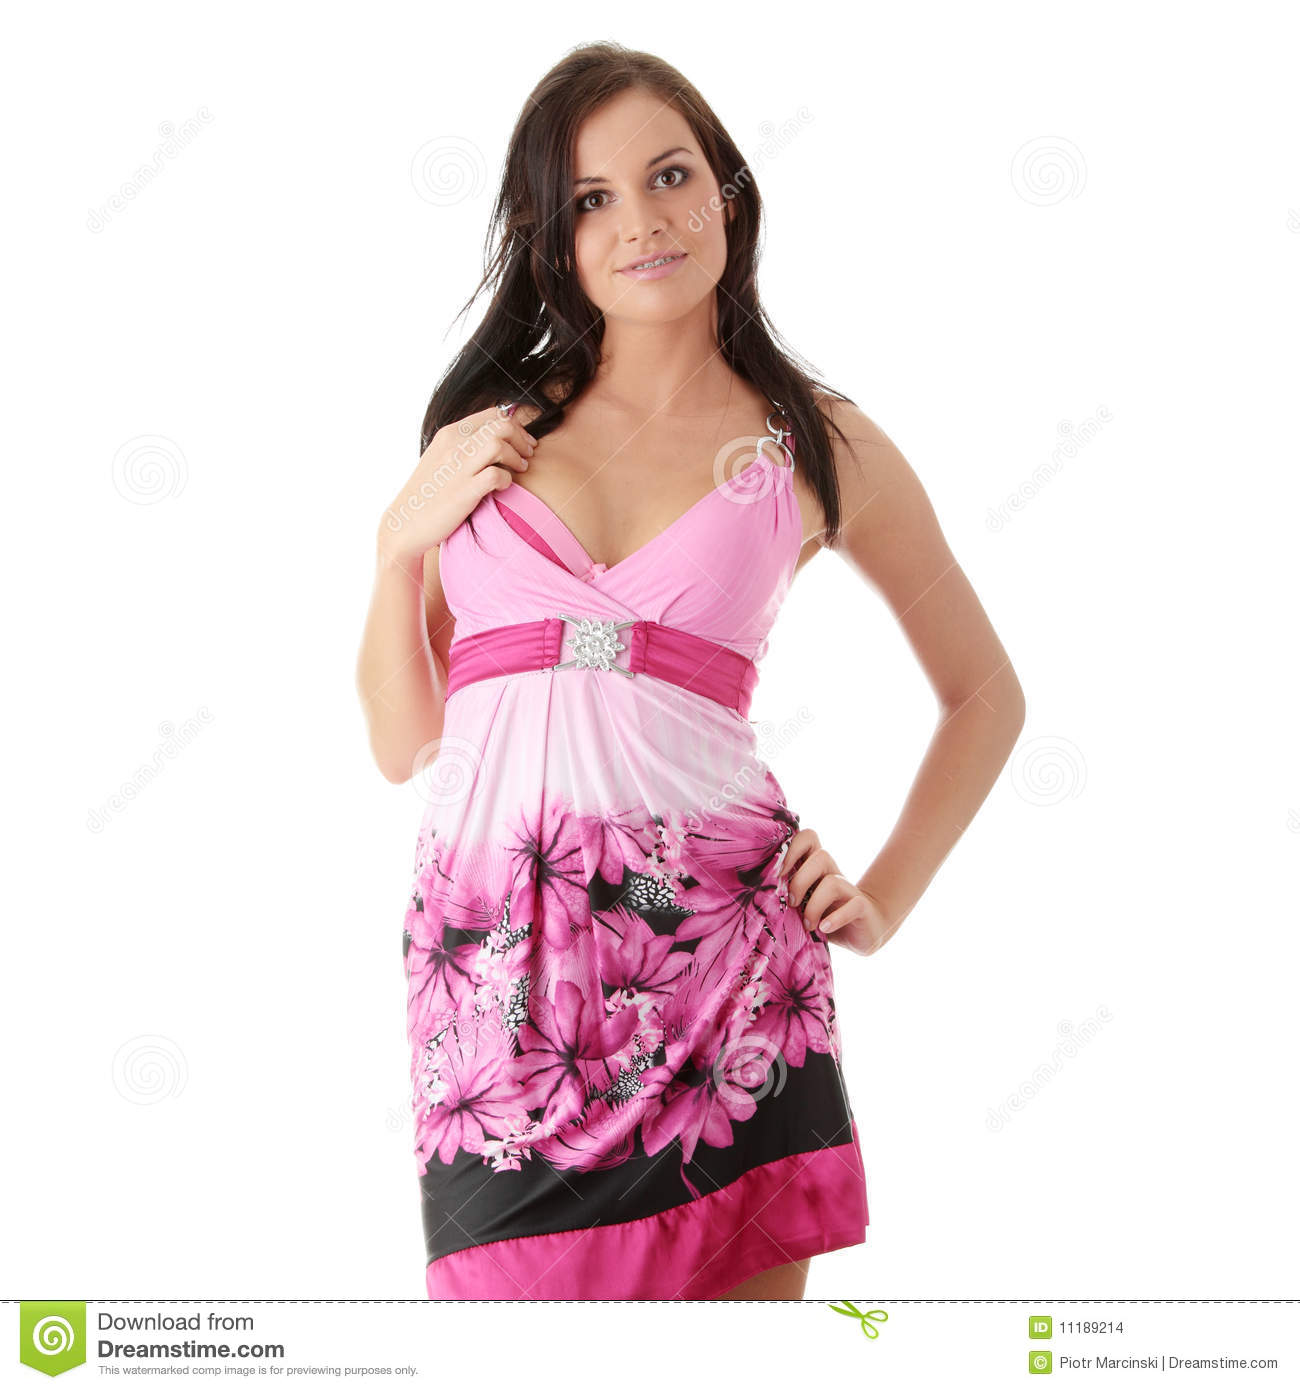 Woman In Pink Dress With Orthodontic Appliance Stock Photo - Image ... cb0521b43